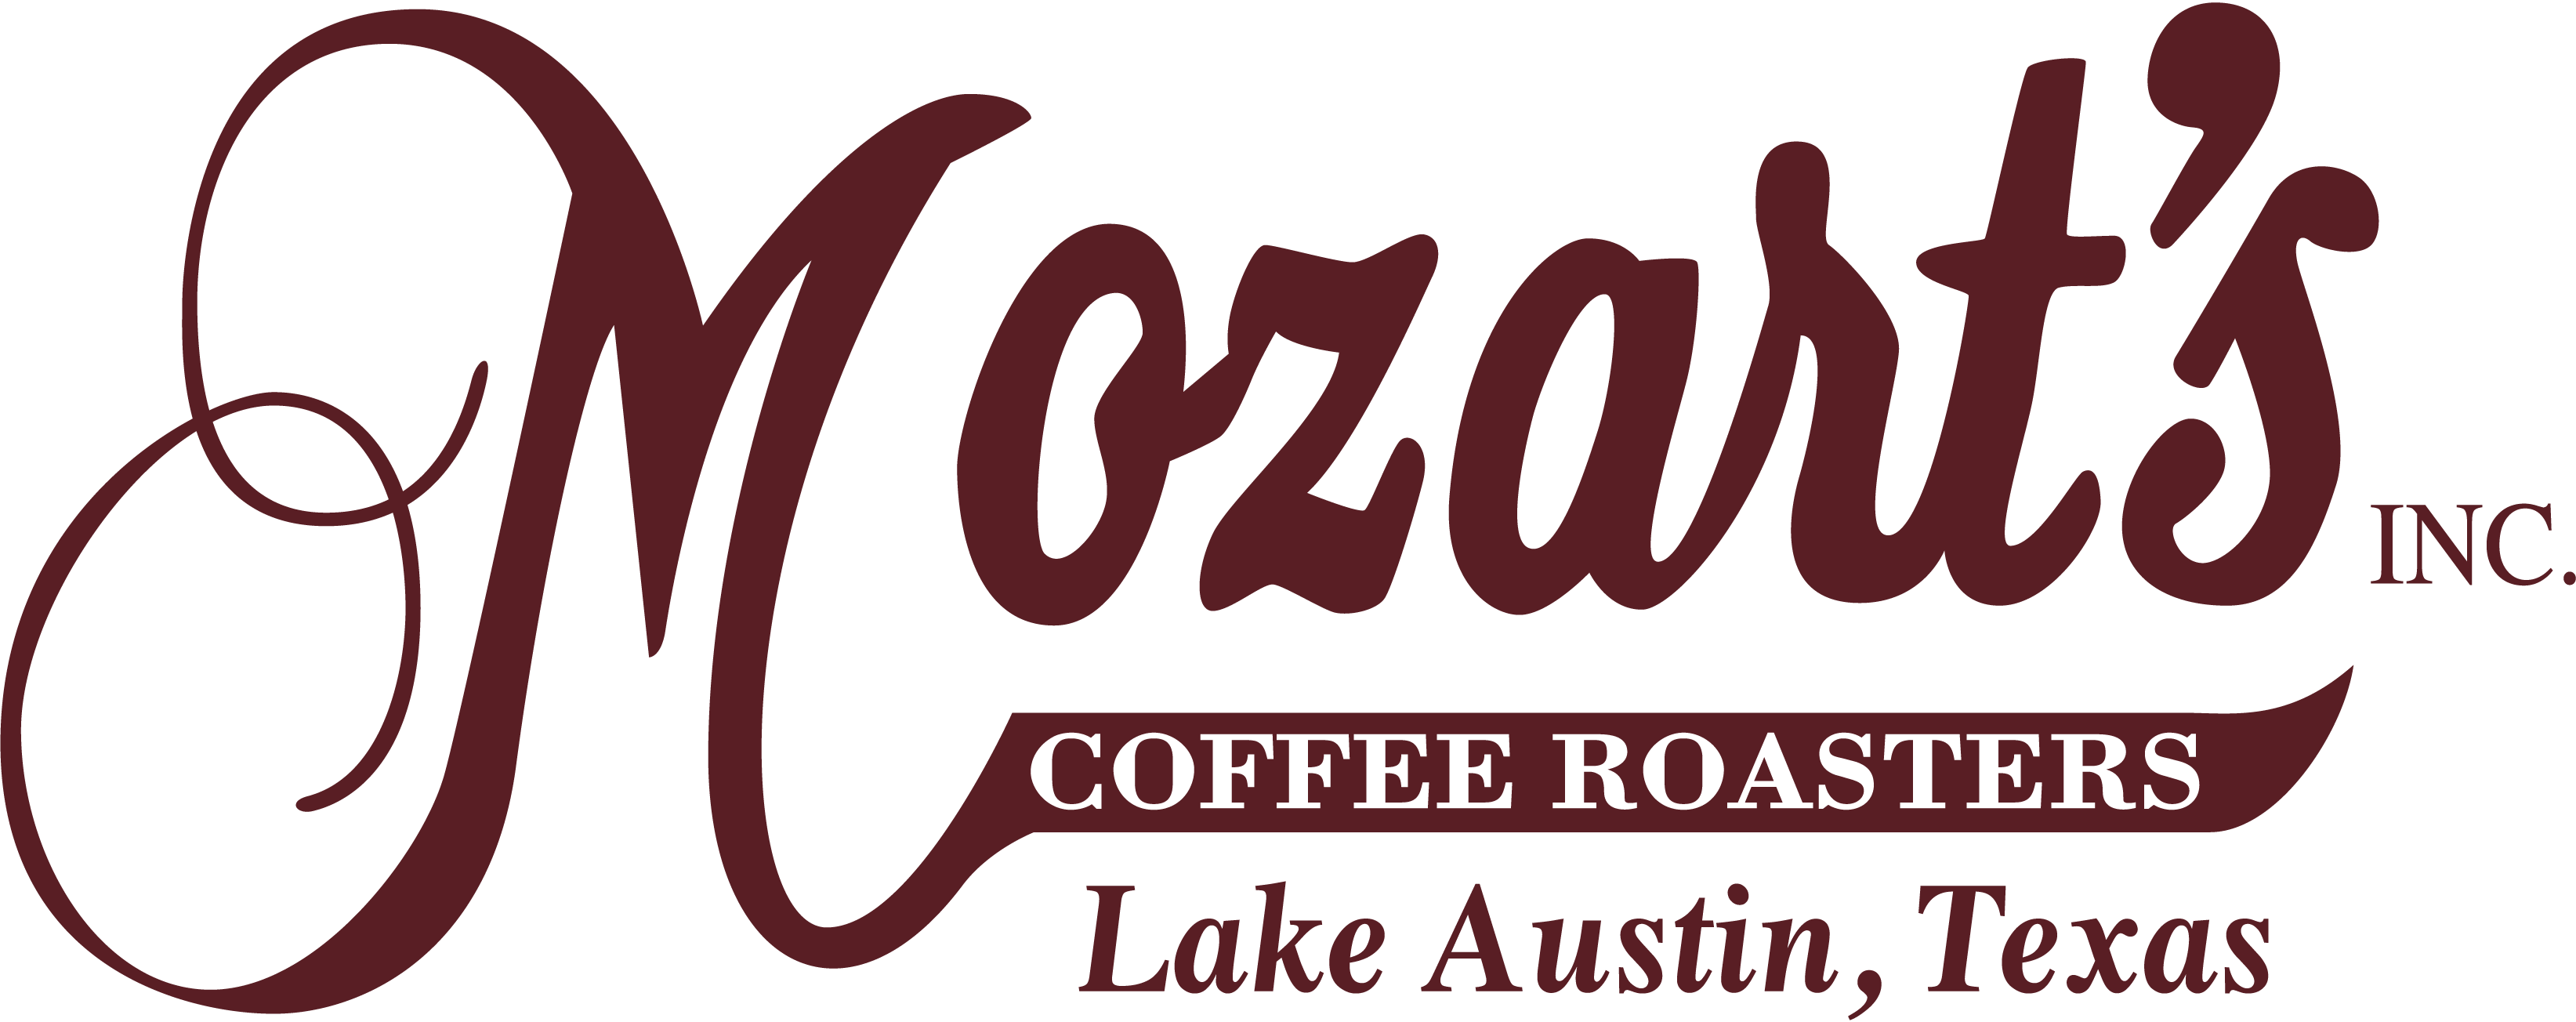 Mozart's Coffee Roasters